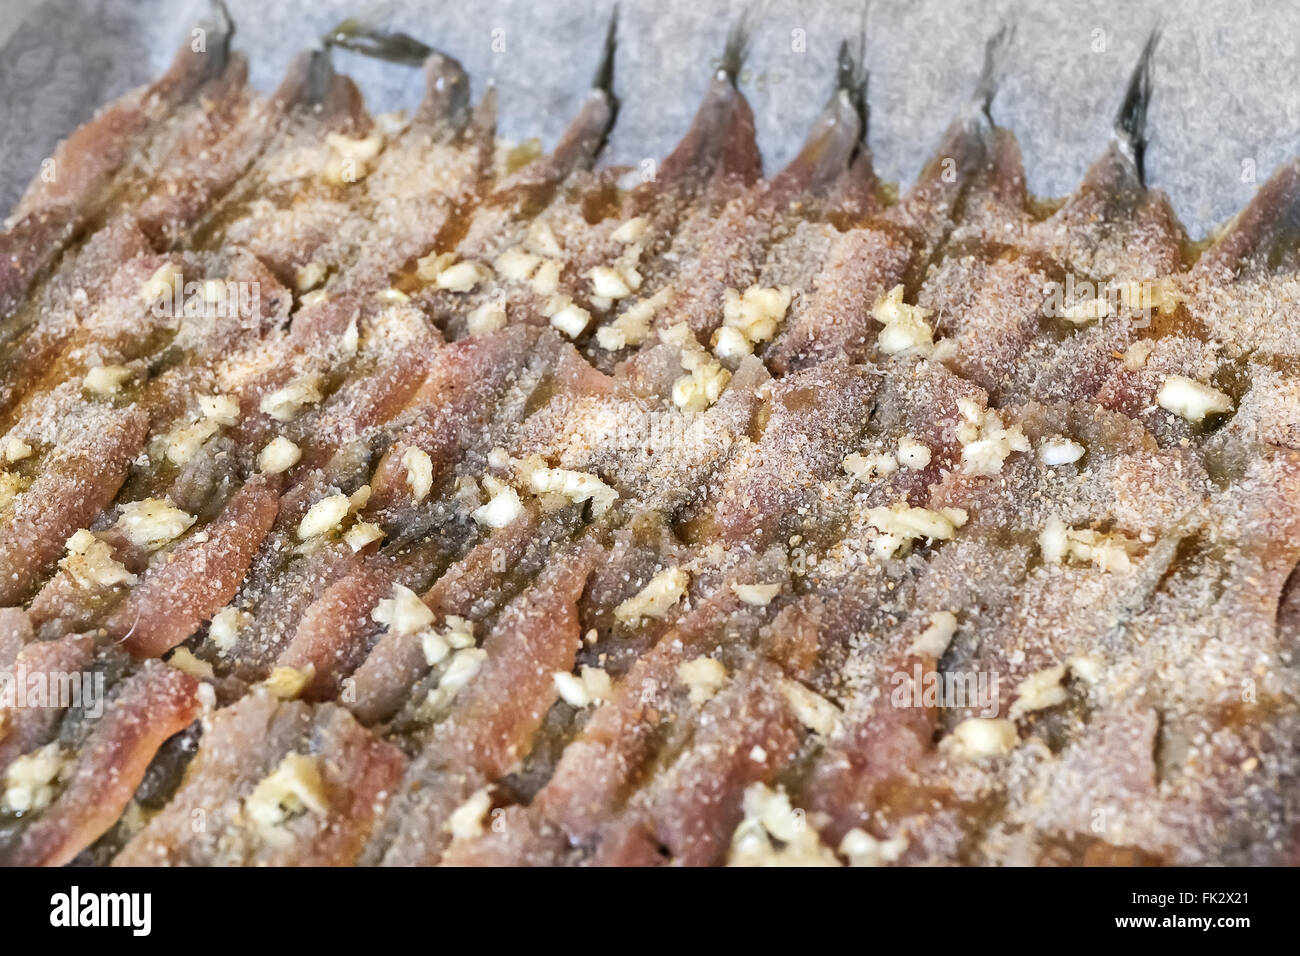 Raw anchovies prepared in pan with oil, garlic and breadcrumbs before being baked and cooked. - Stock Image